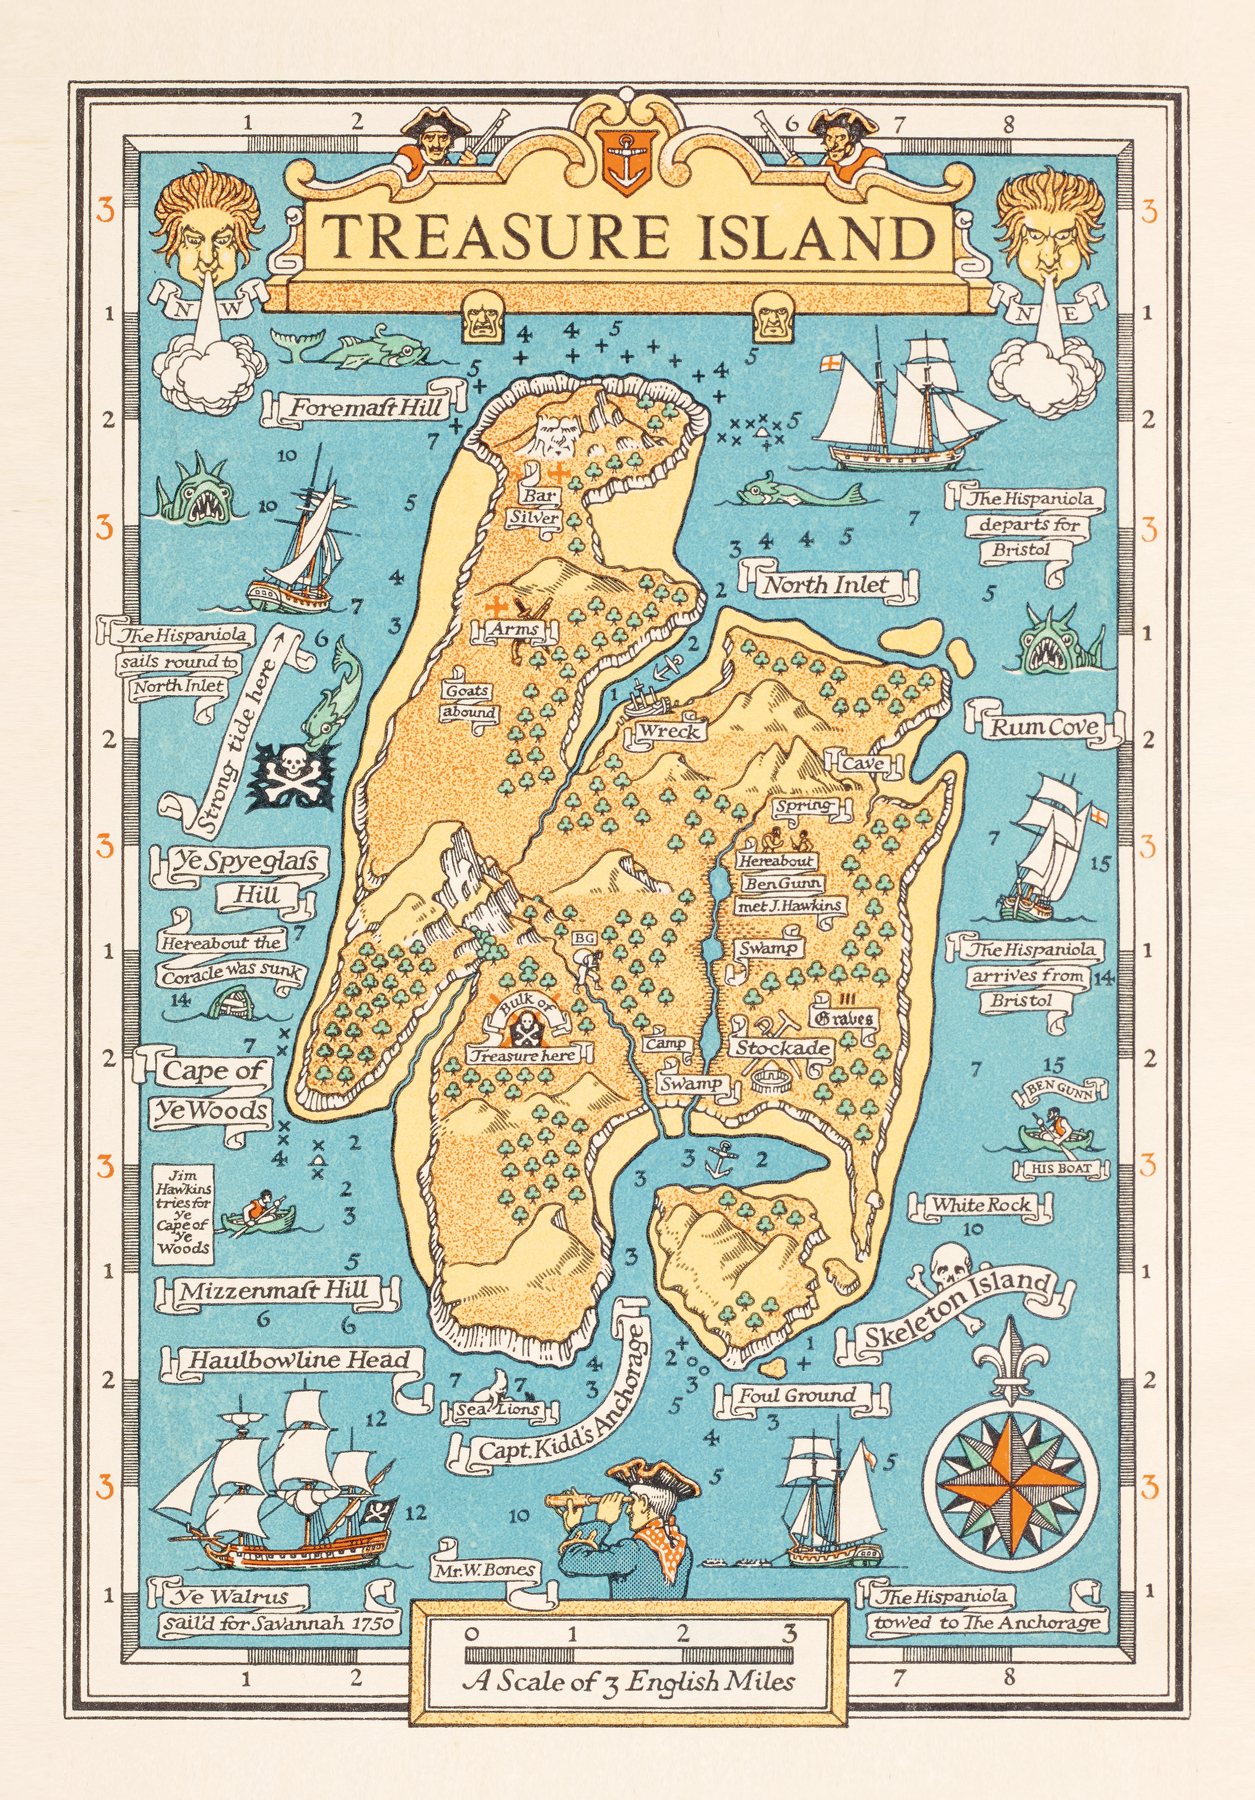 Map from Treasure Island by Robert Louis Stevenson. Cassell & Co.: London, 1899. British Library, London